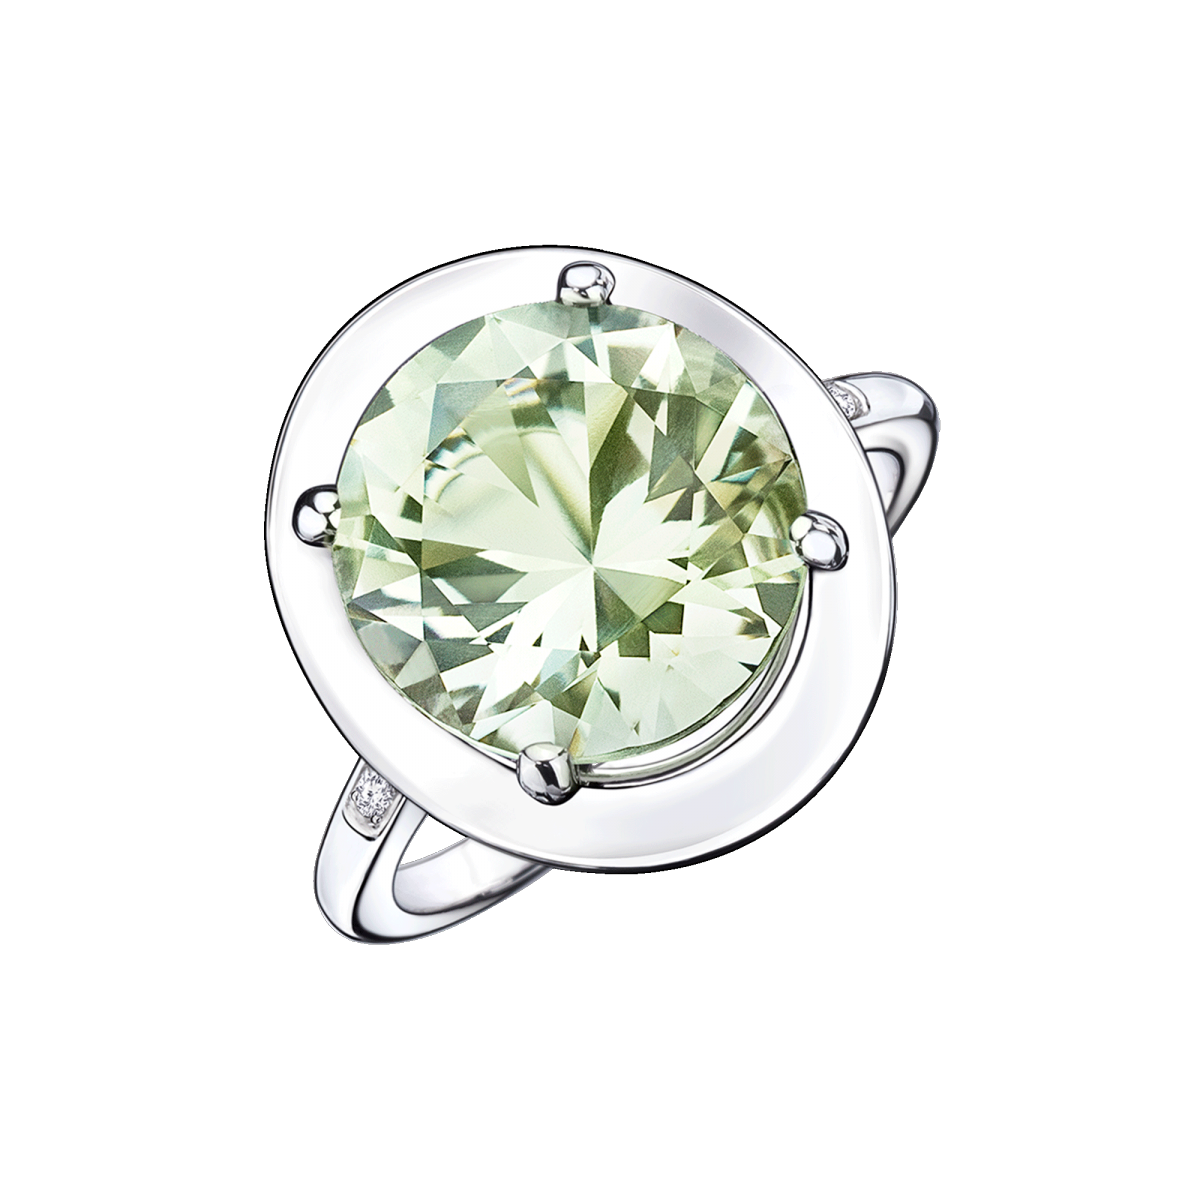 Ring Vraiment Jolie Mon Amour, white gold, green amethyst and diamonds